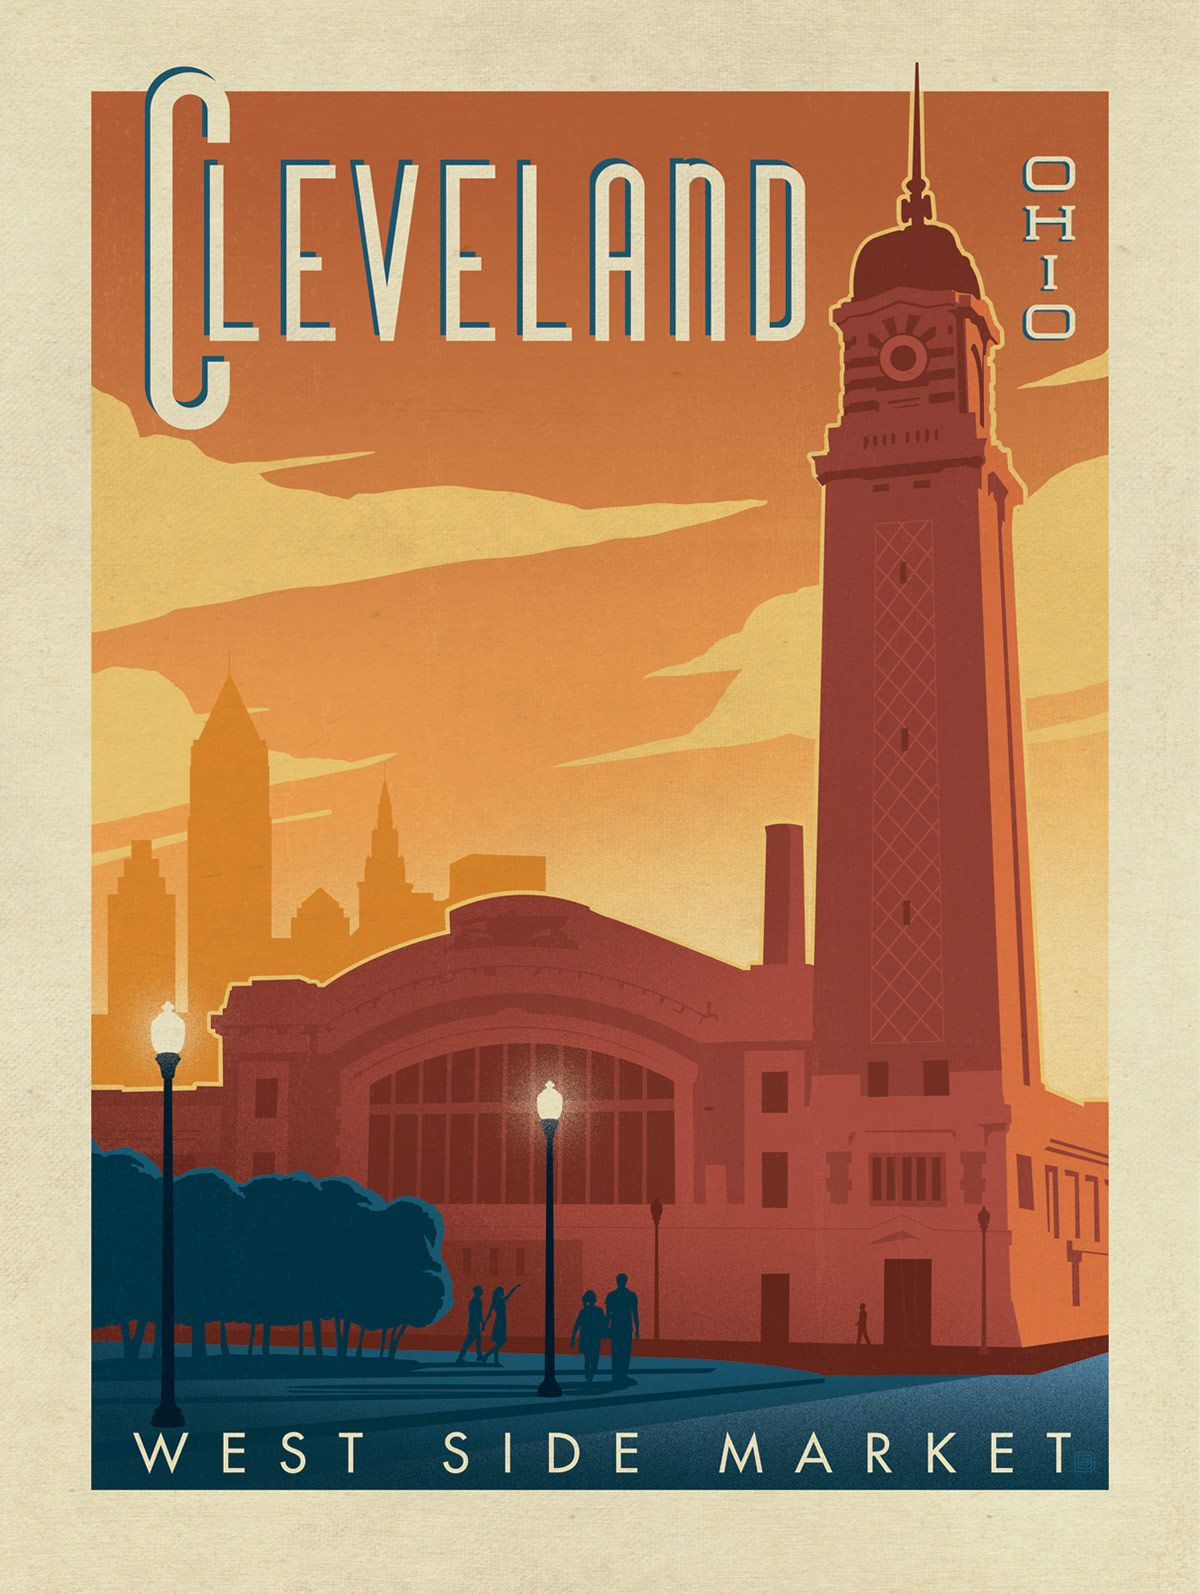 Vintage Travel Poster A1,A2,A3,A4 Sizes Union Terminal Building CLEVELAND USA.